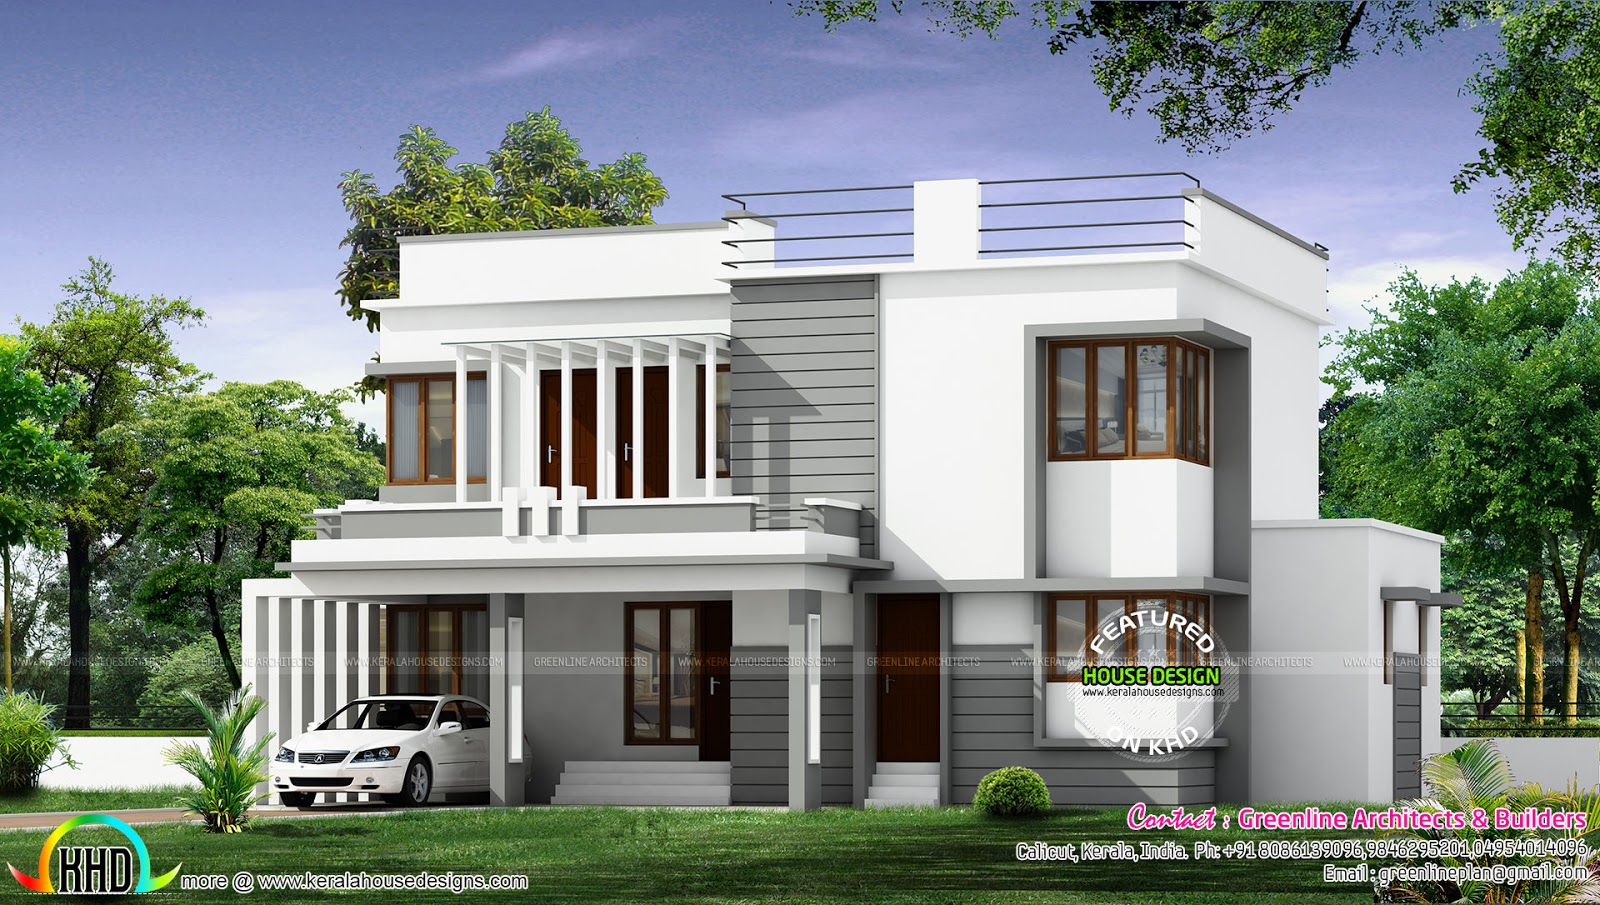 New modern house architecture kerala home design and floor plans New house design